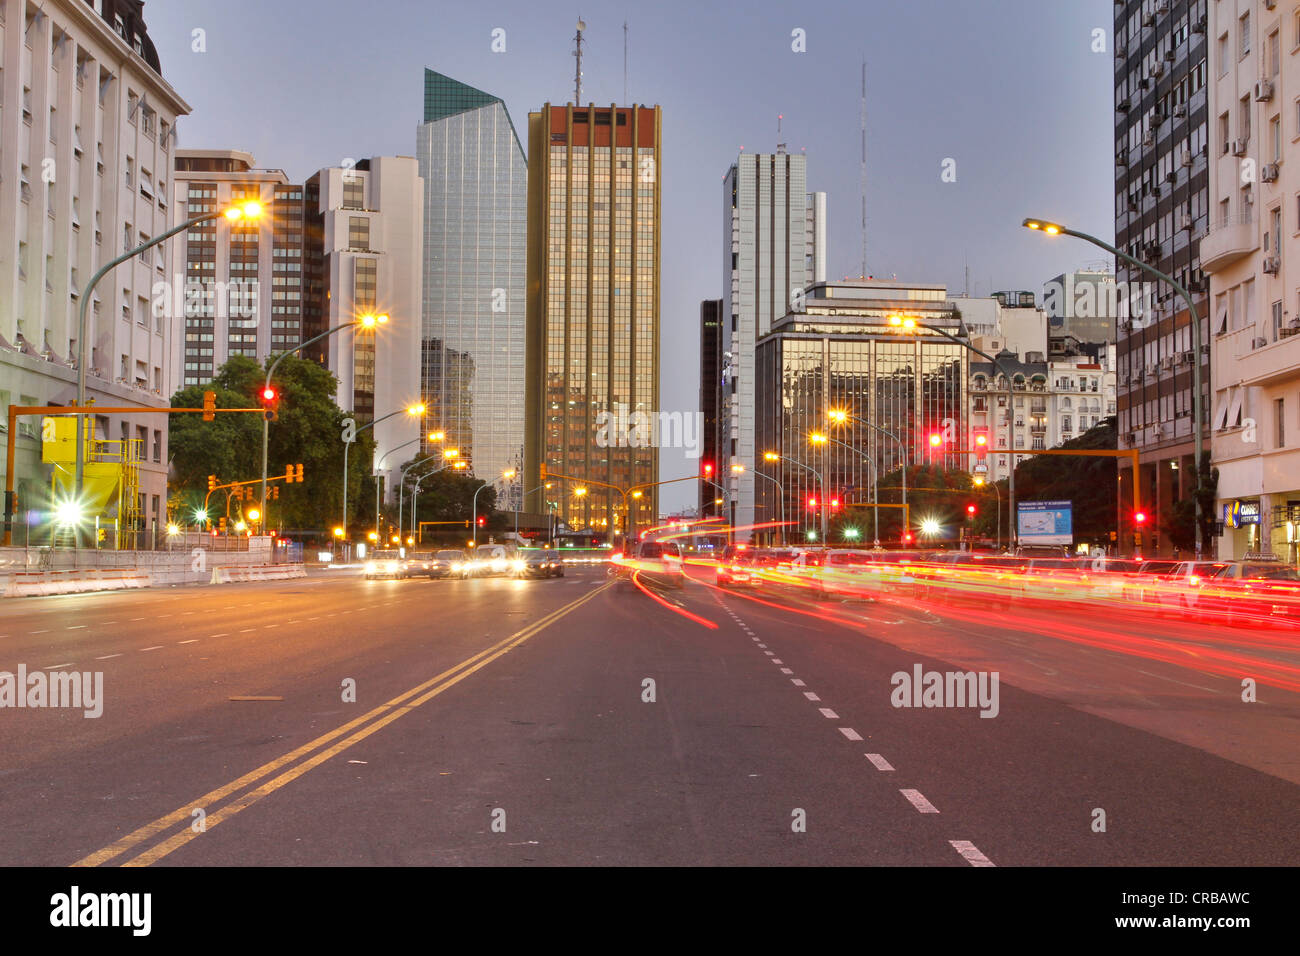 Junction in the evening light, Avenida del Libertador, Maipu, Buenos Aires, Argentina, South America - Stock Image